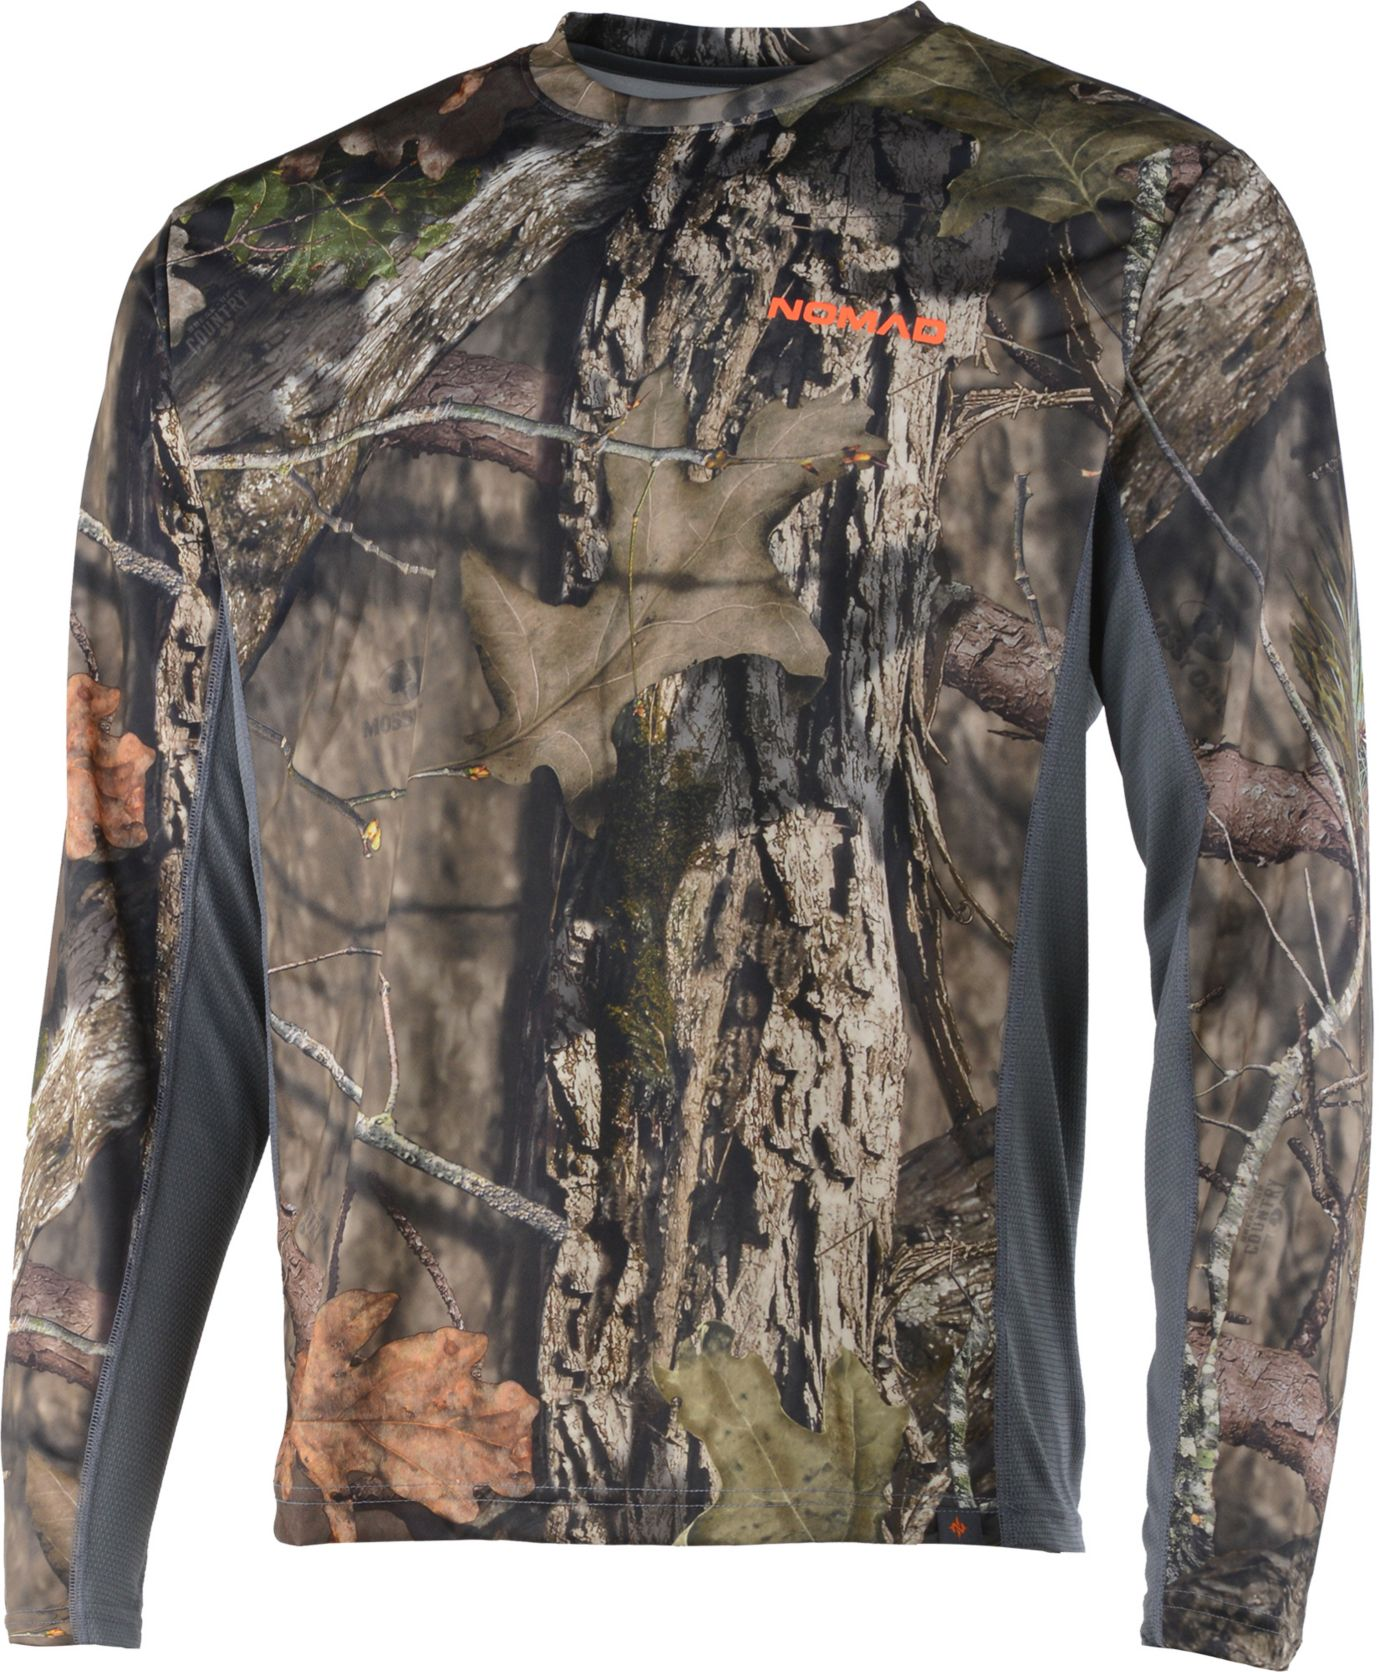 NOMAD Men's Long Sleeve Icon Cooling Hunting T-Shirt